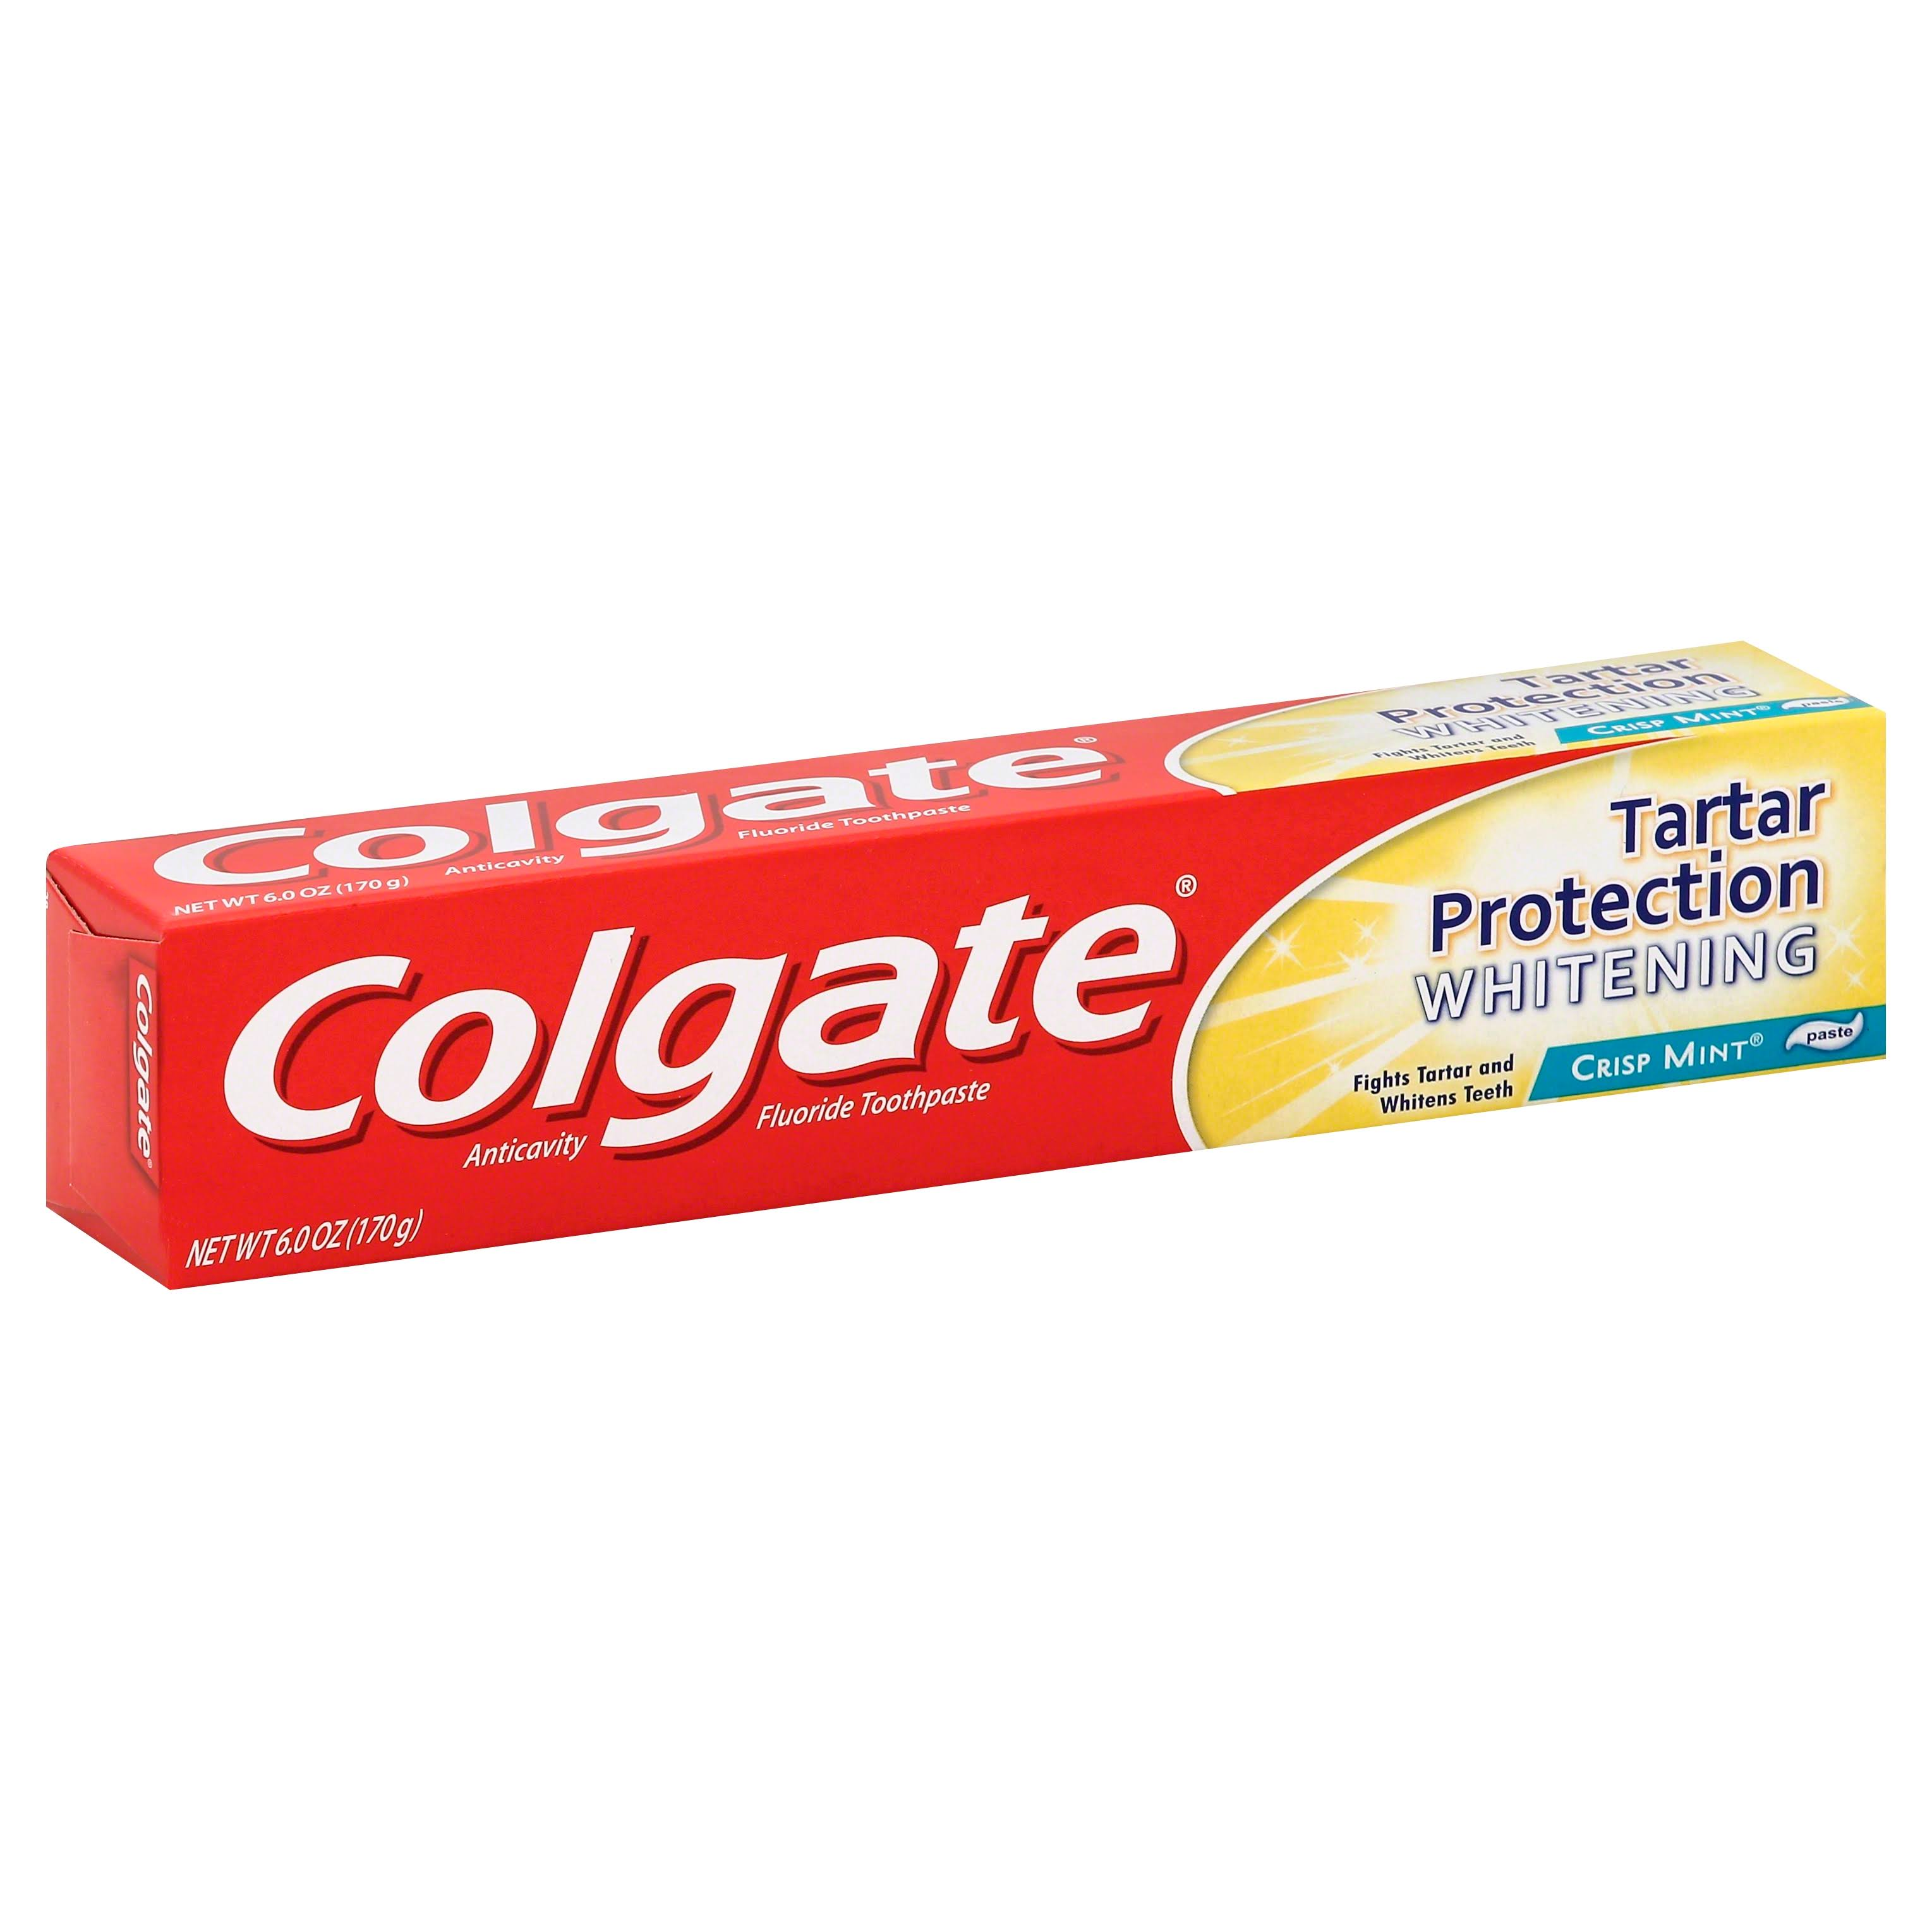 Colgate Tartar Protection Whitening Toothpaste - Crisp Mint, 6oz